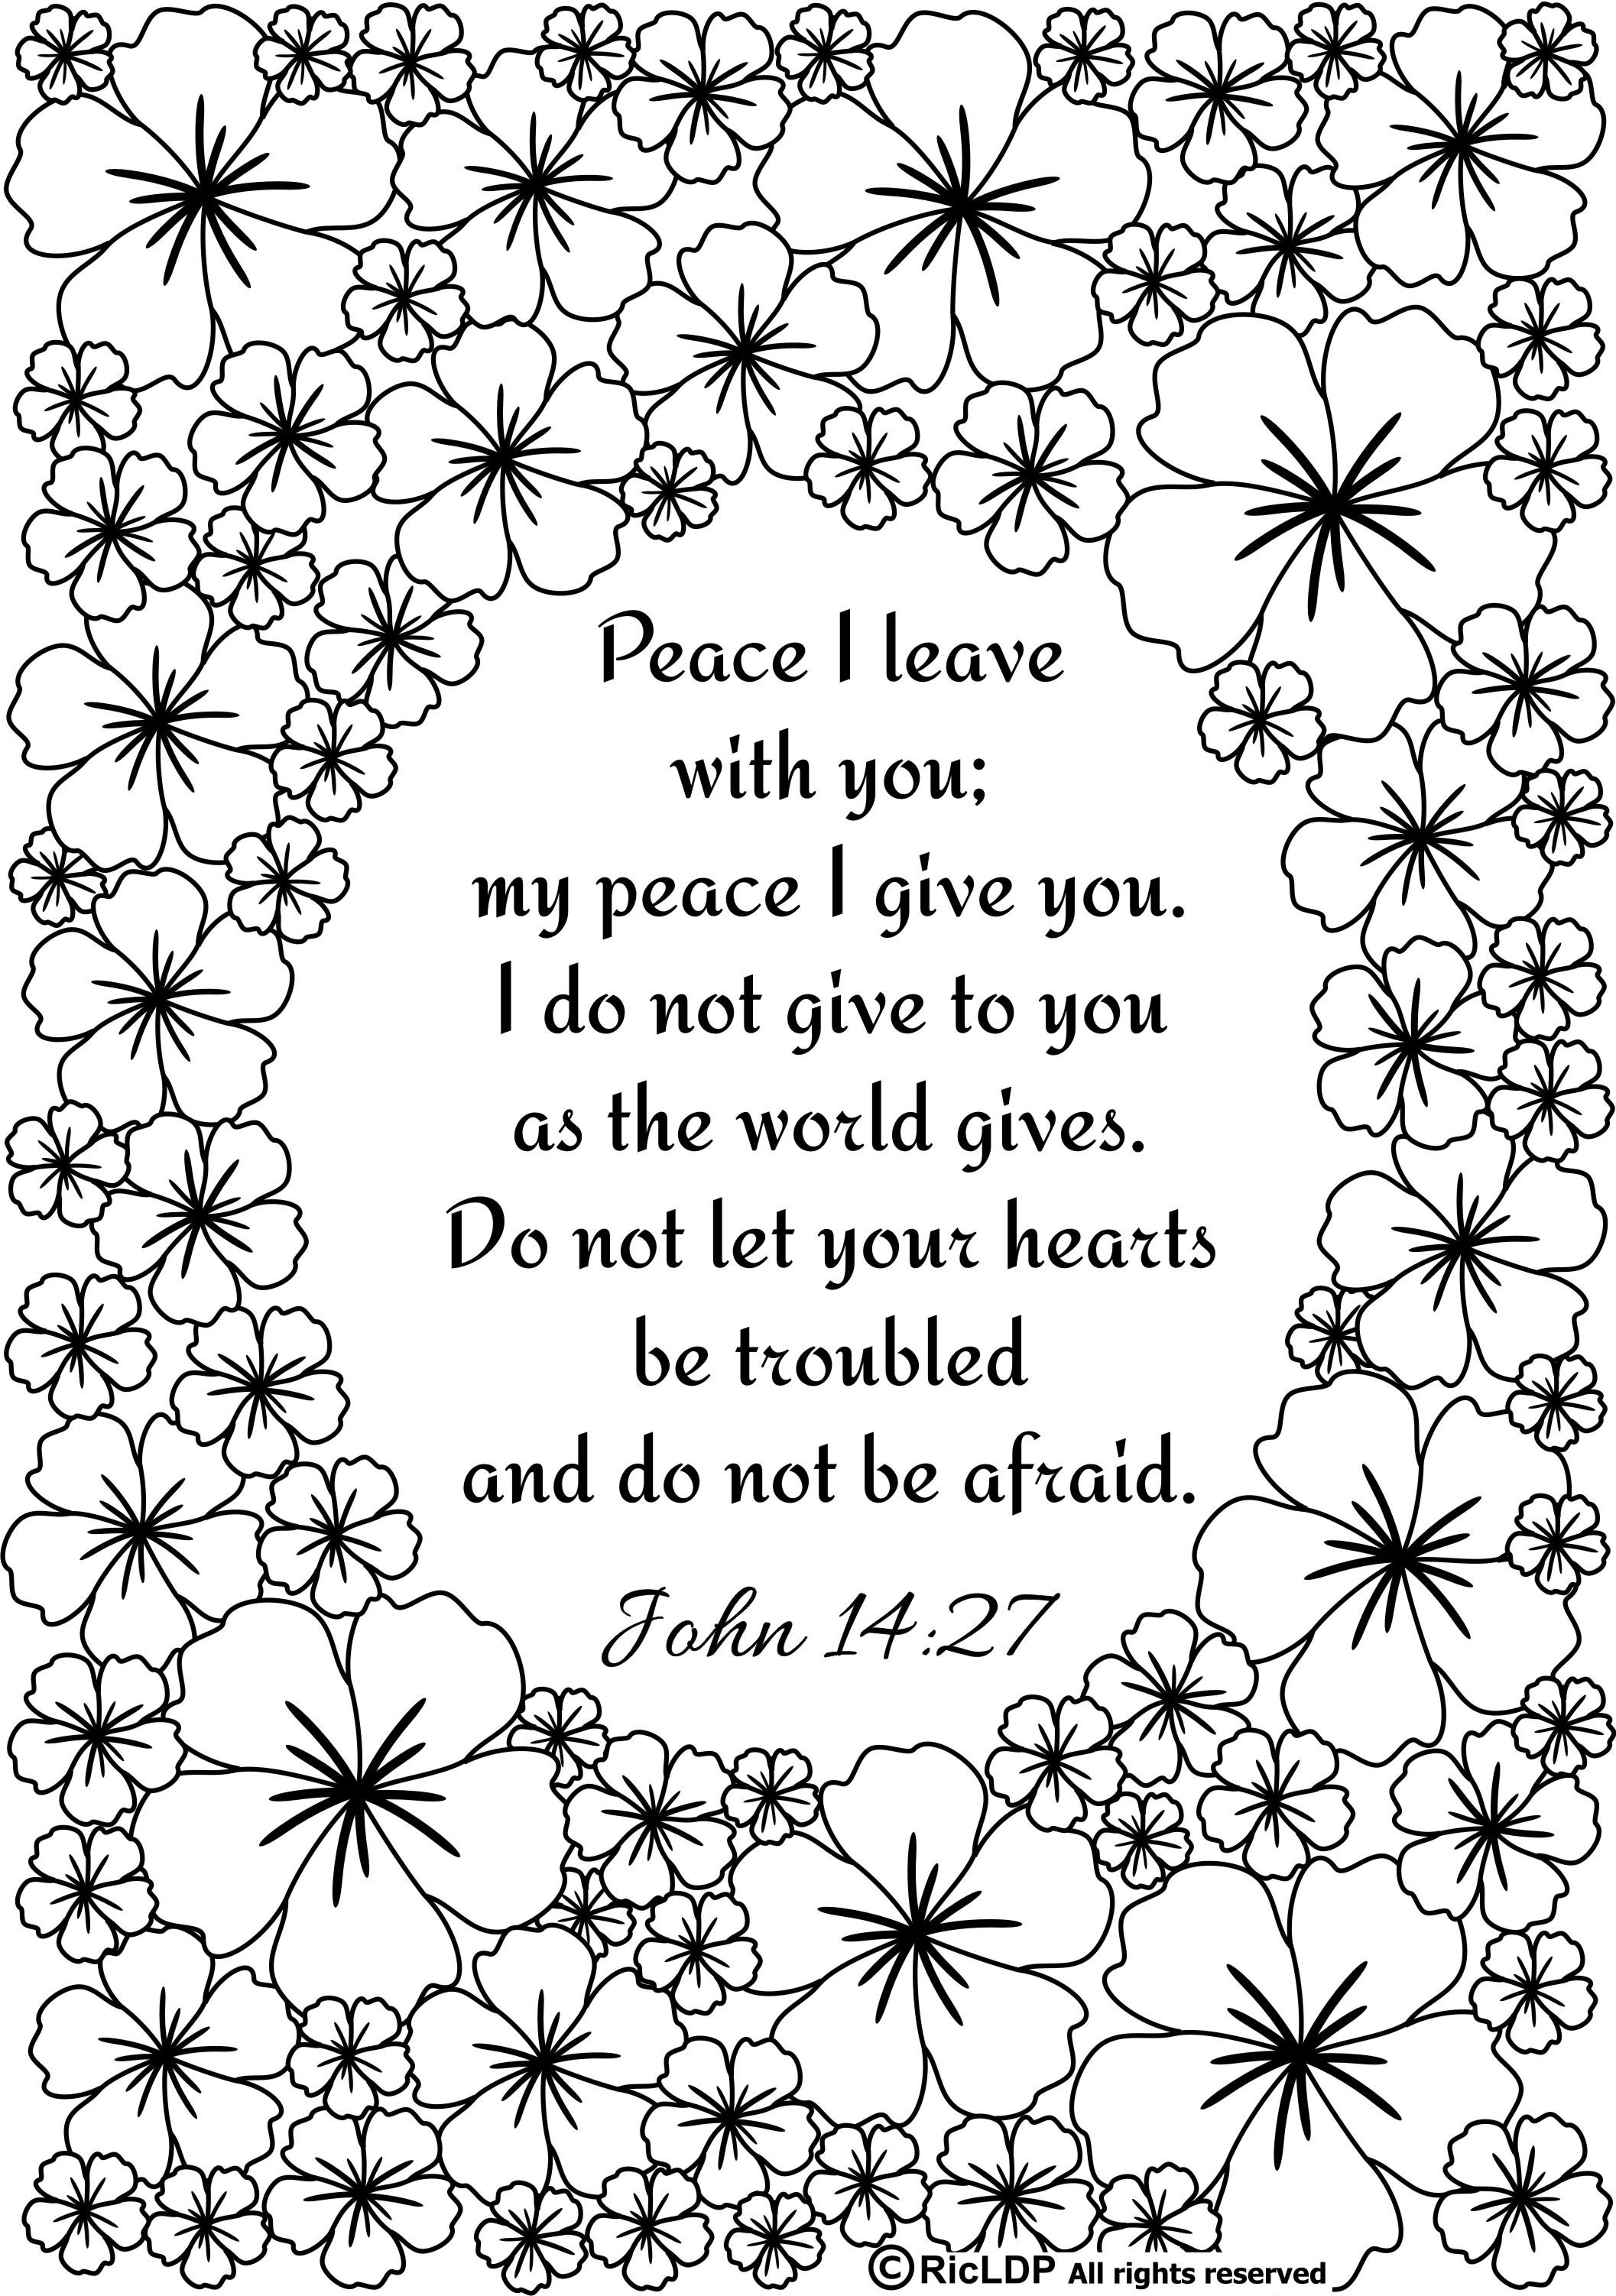 Coloring Book World ~ Bible Verse Coloring Pages Free Printable - Free Printable Bible Coloring Pages With Scriptures